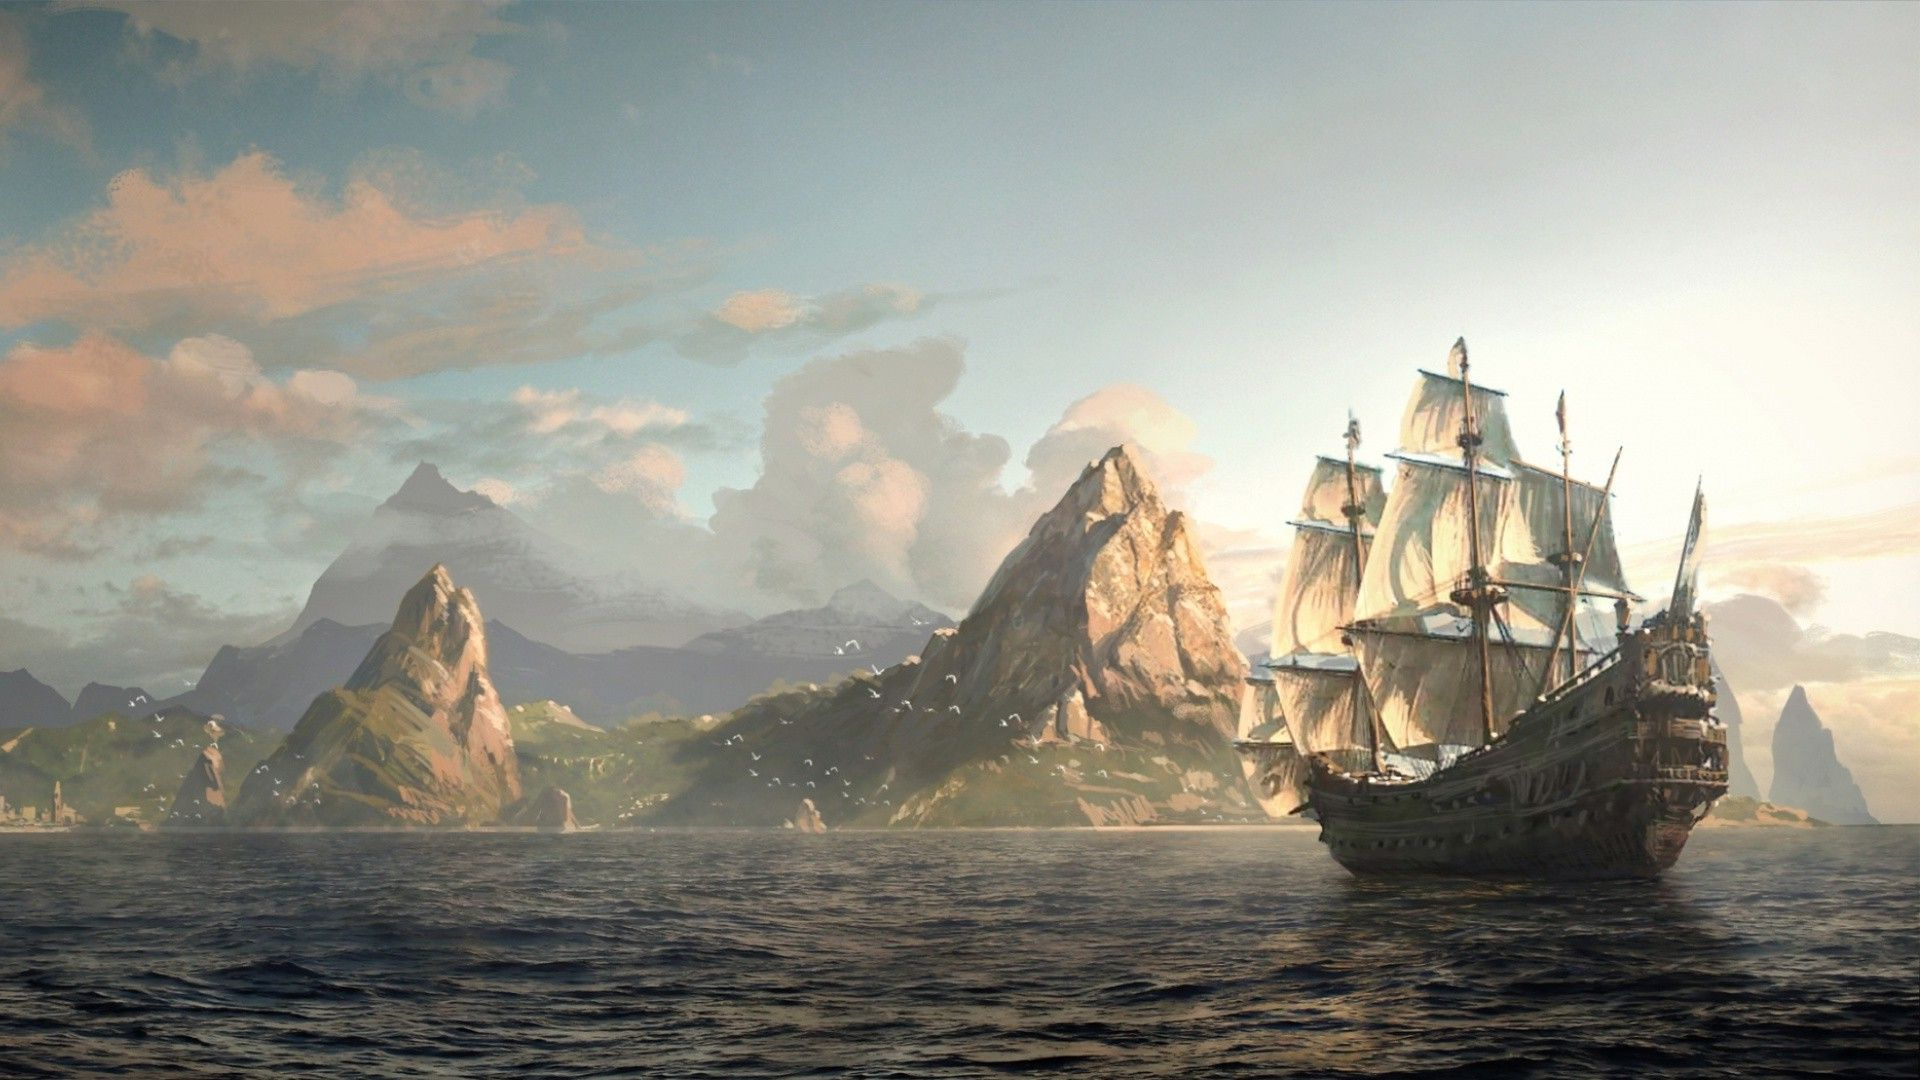 ... Assassin's Creed Black Flag Wallpaper Full HD. Assassin's Creed